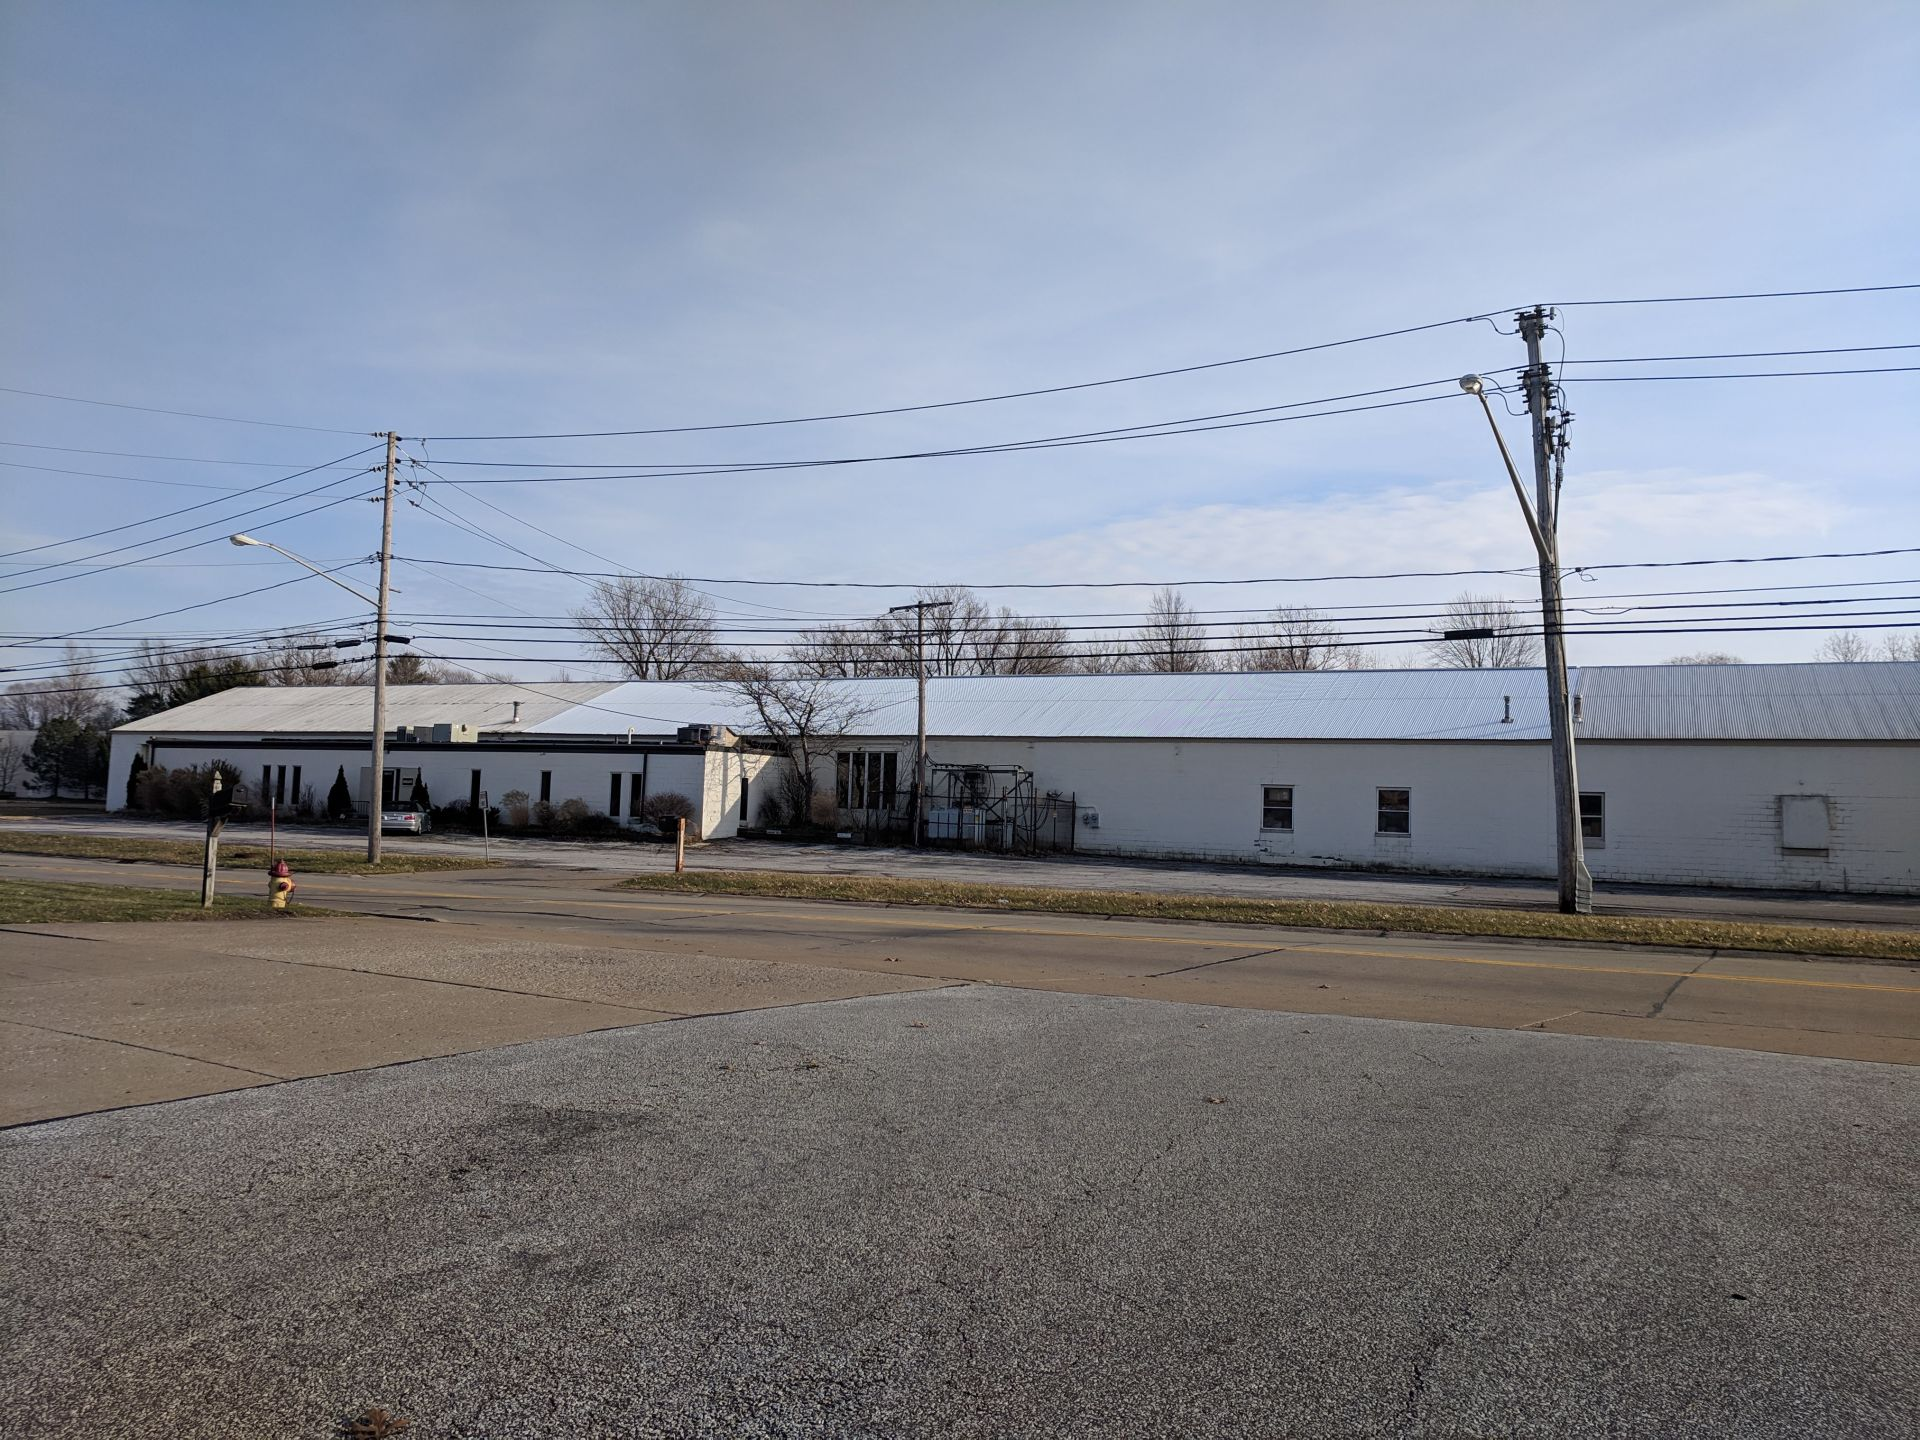 NEW LISTING! High Demand 150,000 SF Industrial Space for Sale or lease in Mentor, Ohio